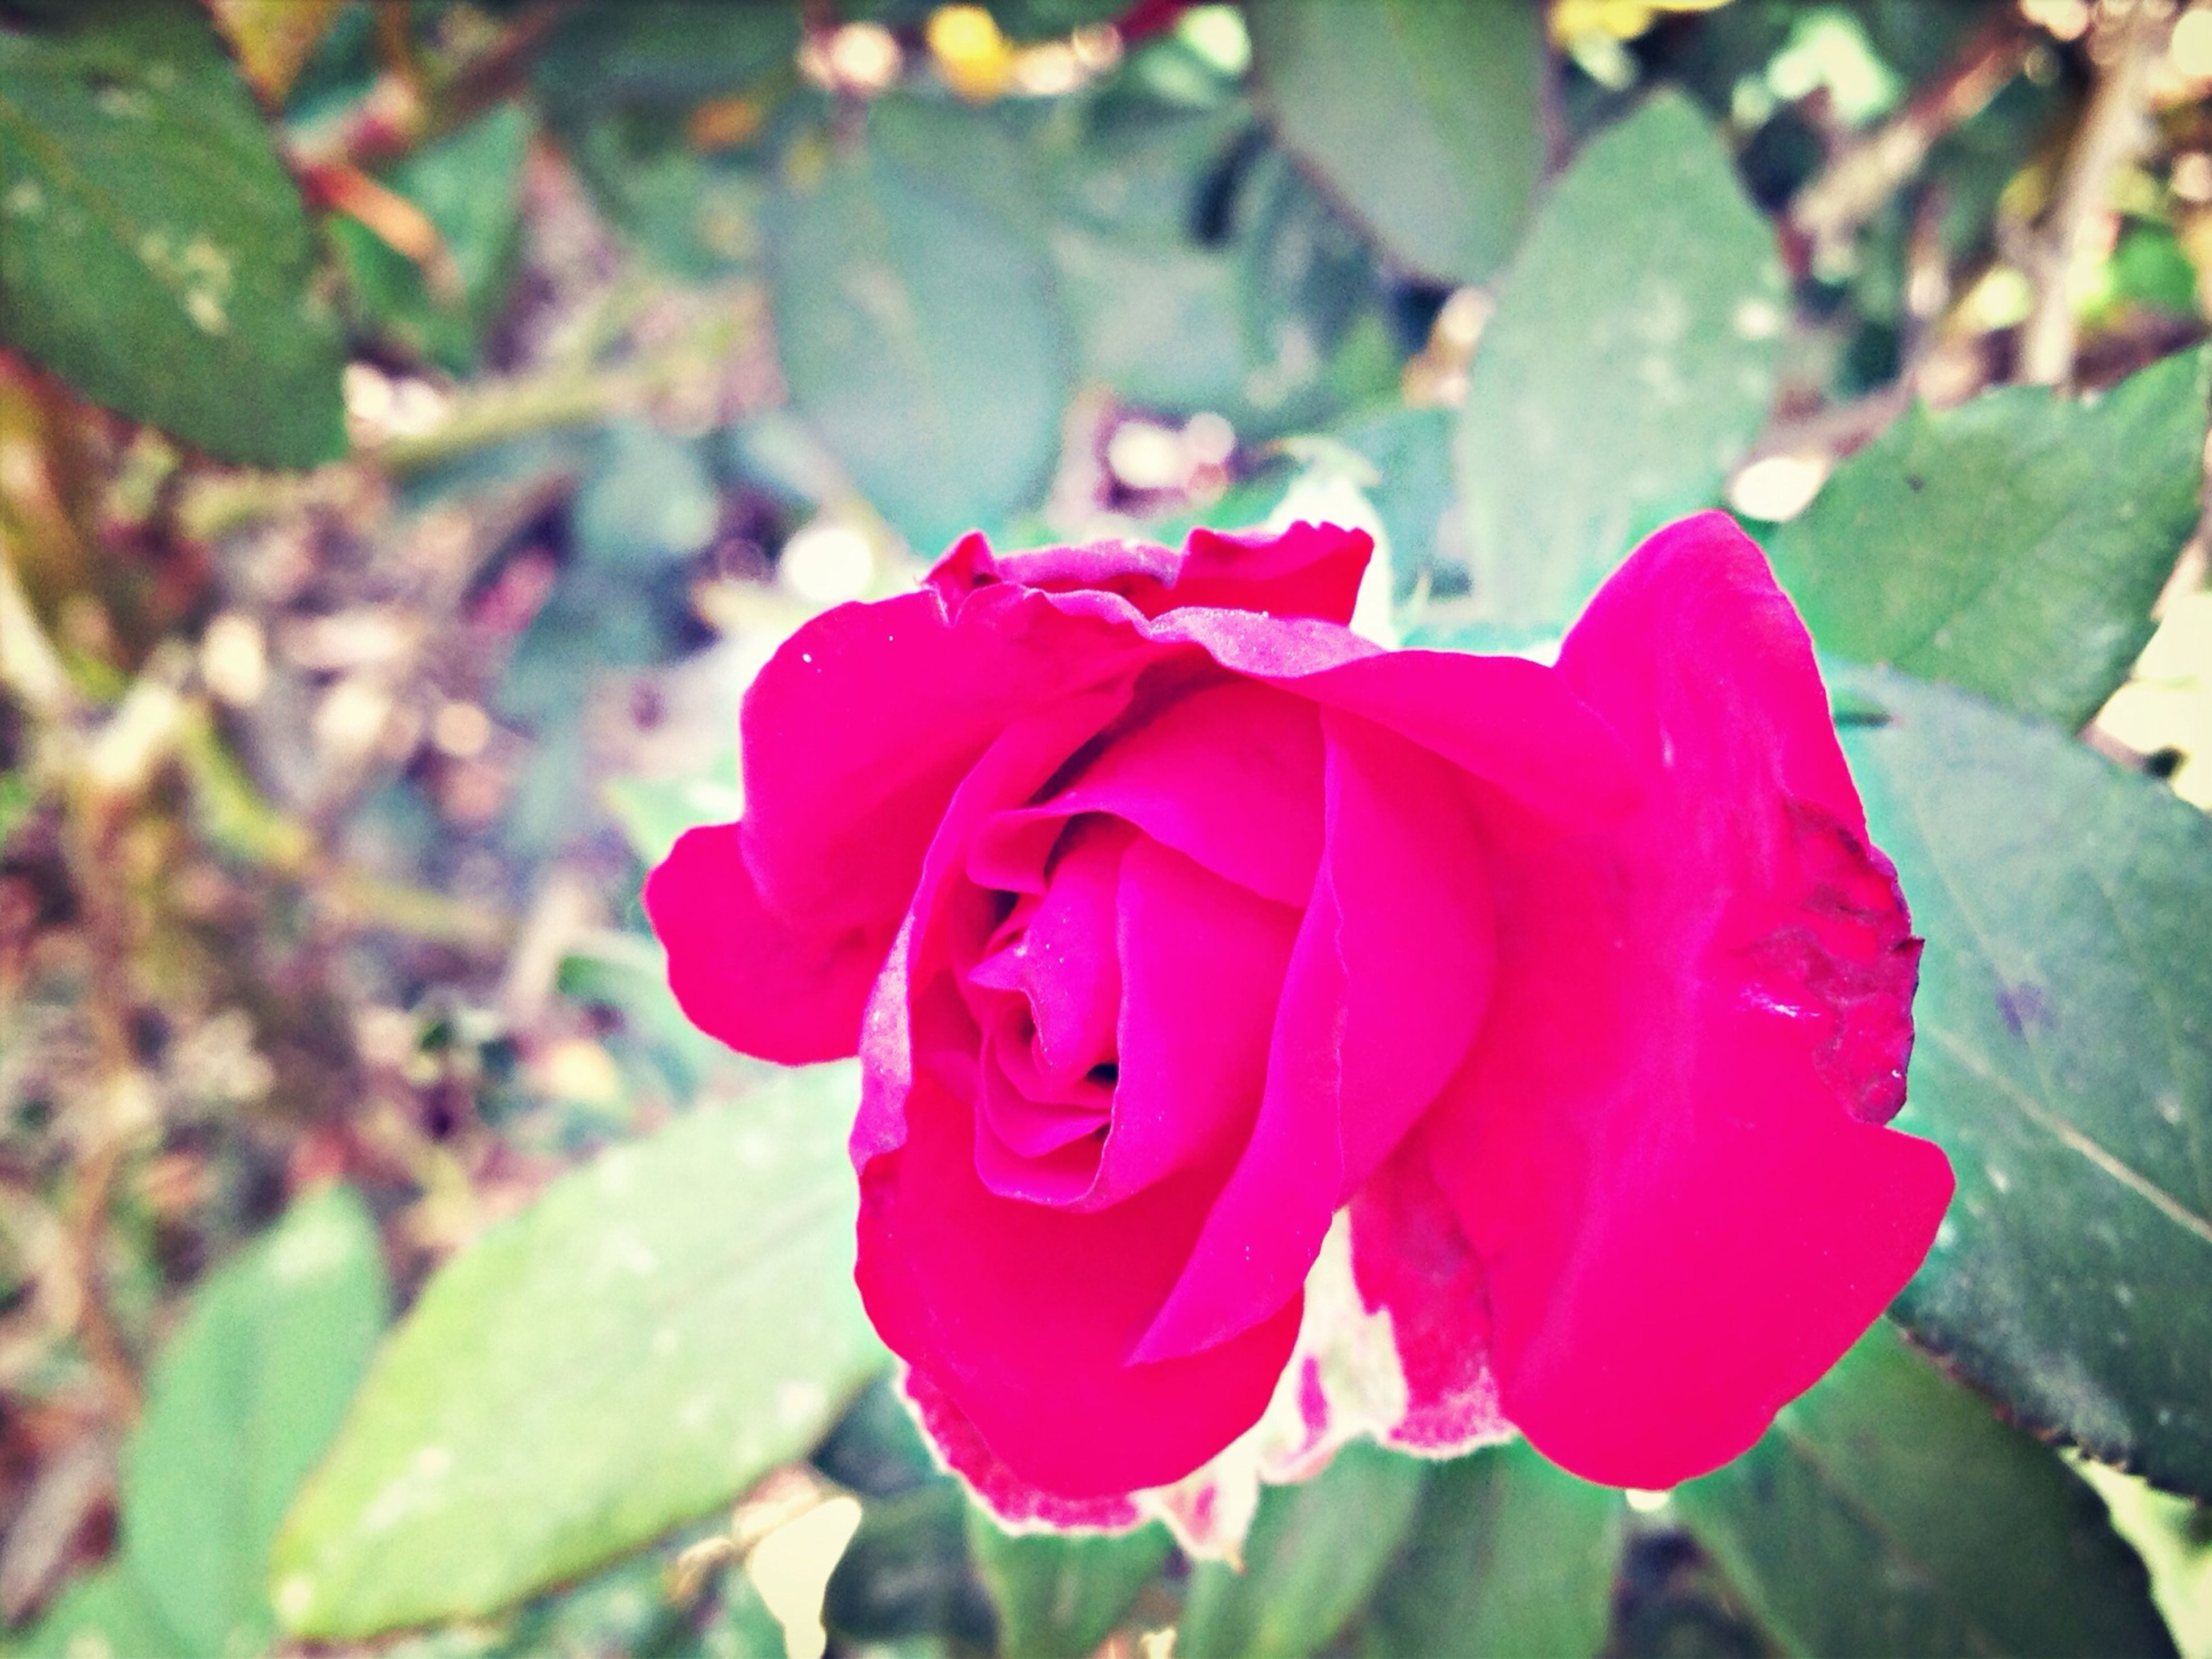 flower, petal, flower head, freshness, fragility, growth, focus on foreground, close-up, blooming, beauty in nature, rose - flower, red, nature, single flower, plant, pink color, leaf, in bloom, park - man made space, day